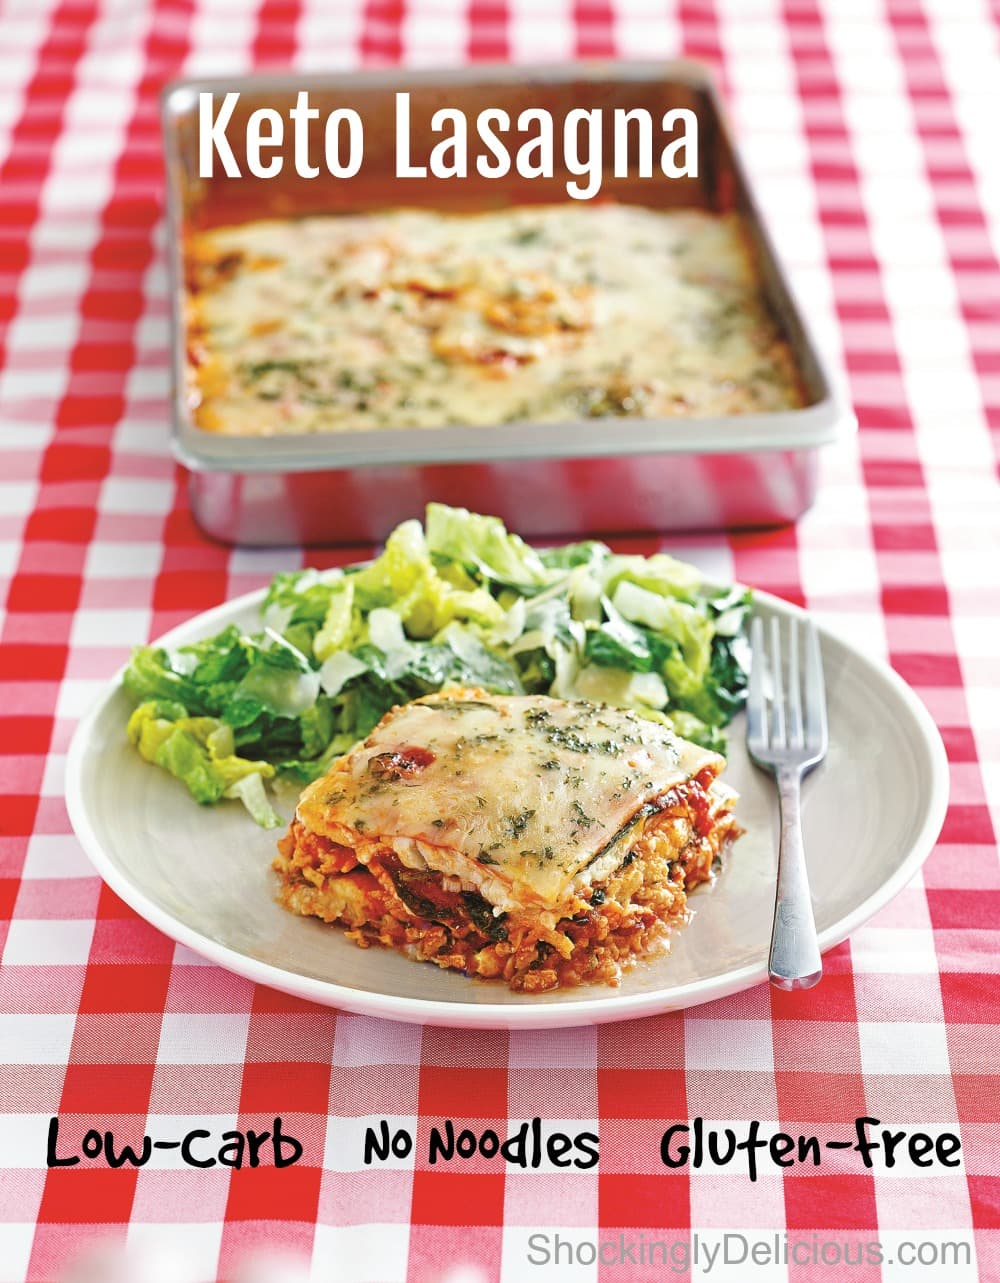 Keto Lasagna on a red checkered tablecloth